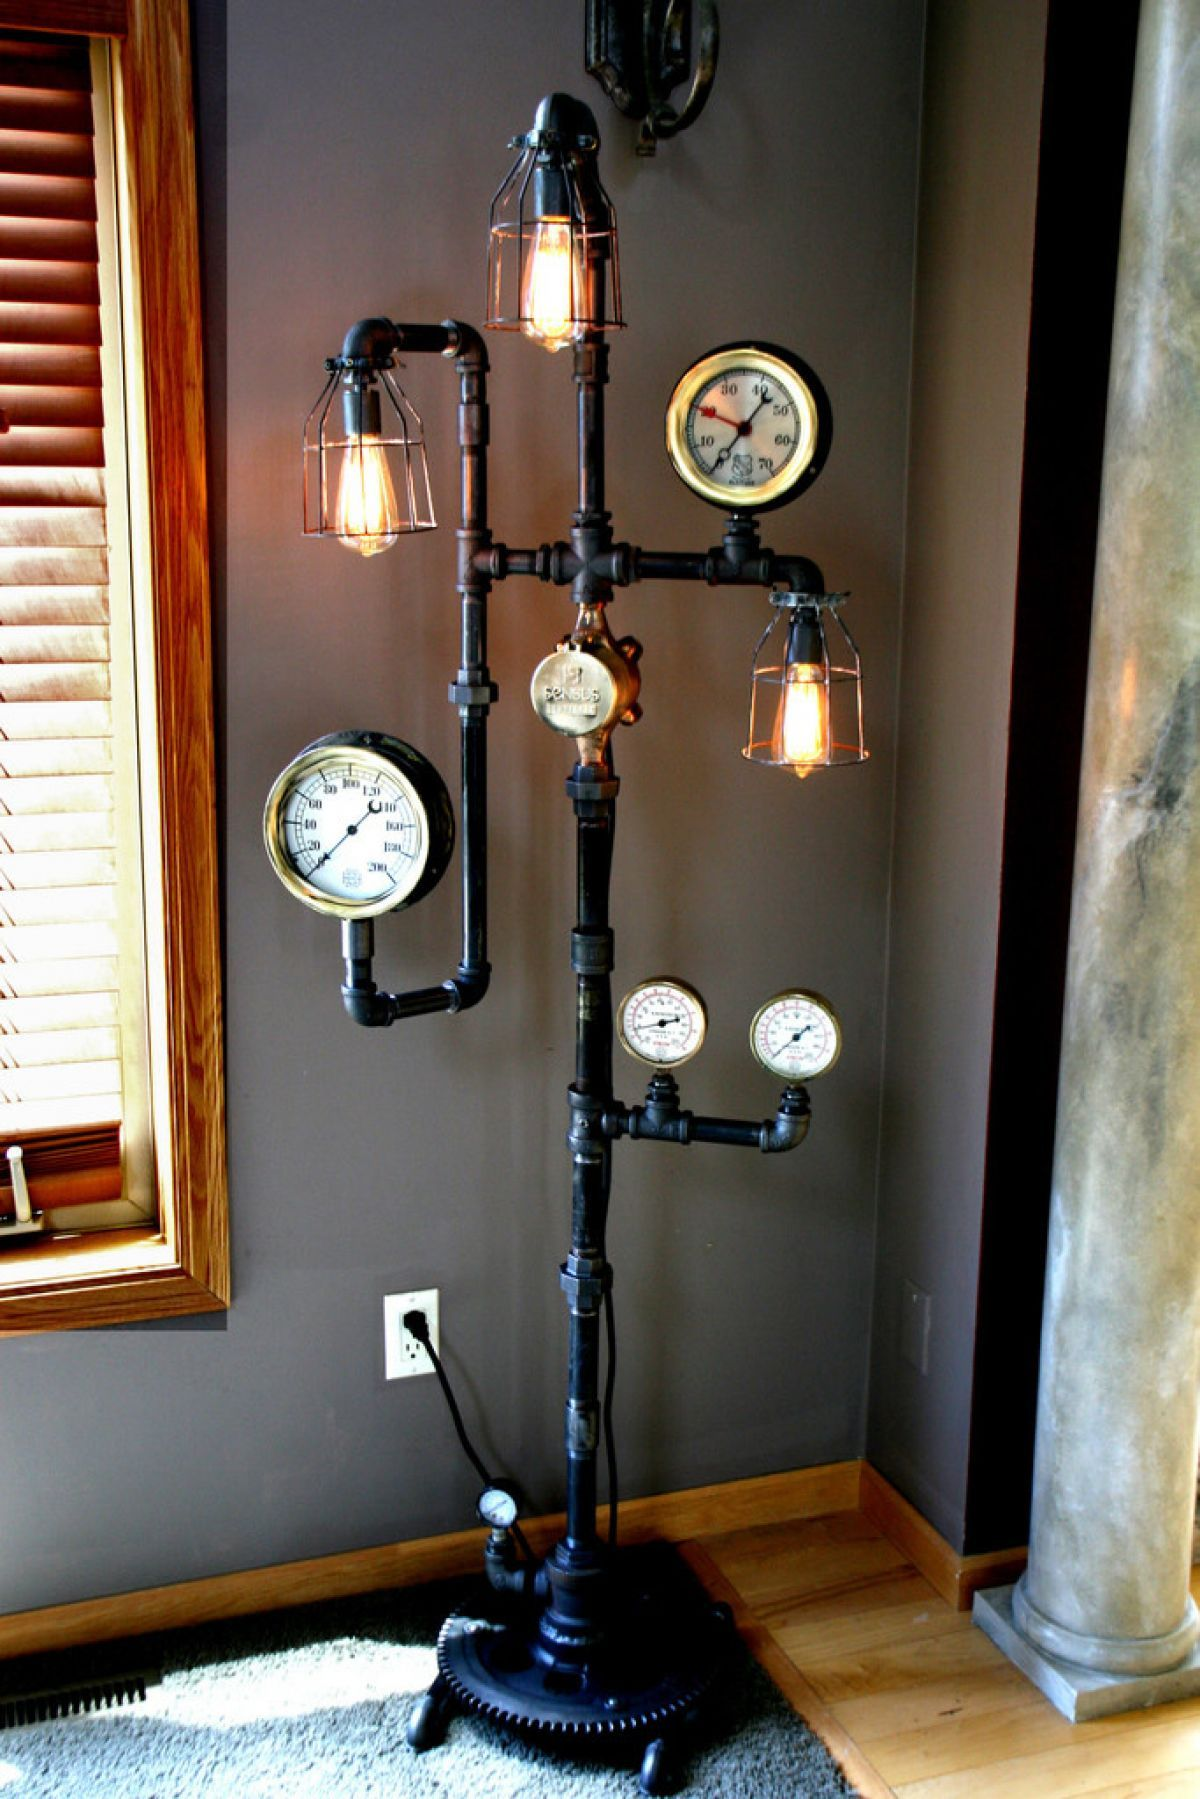 37 best retro inspired stuff images on pinterest machine age 37 best retro inspired stuff images on pinterest machine age steampunk lamp and industrial lighting mozeypictures Image collections